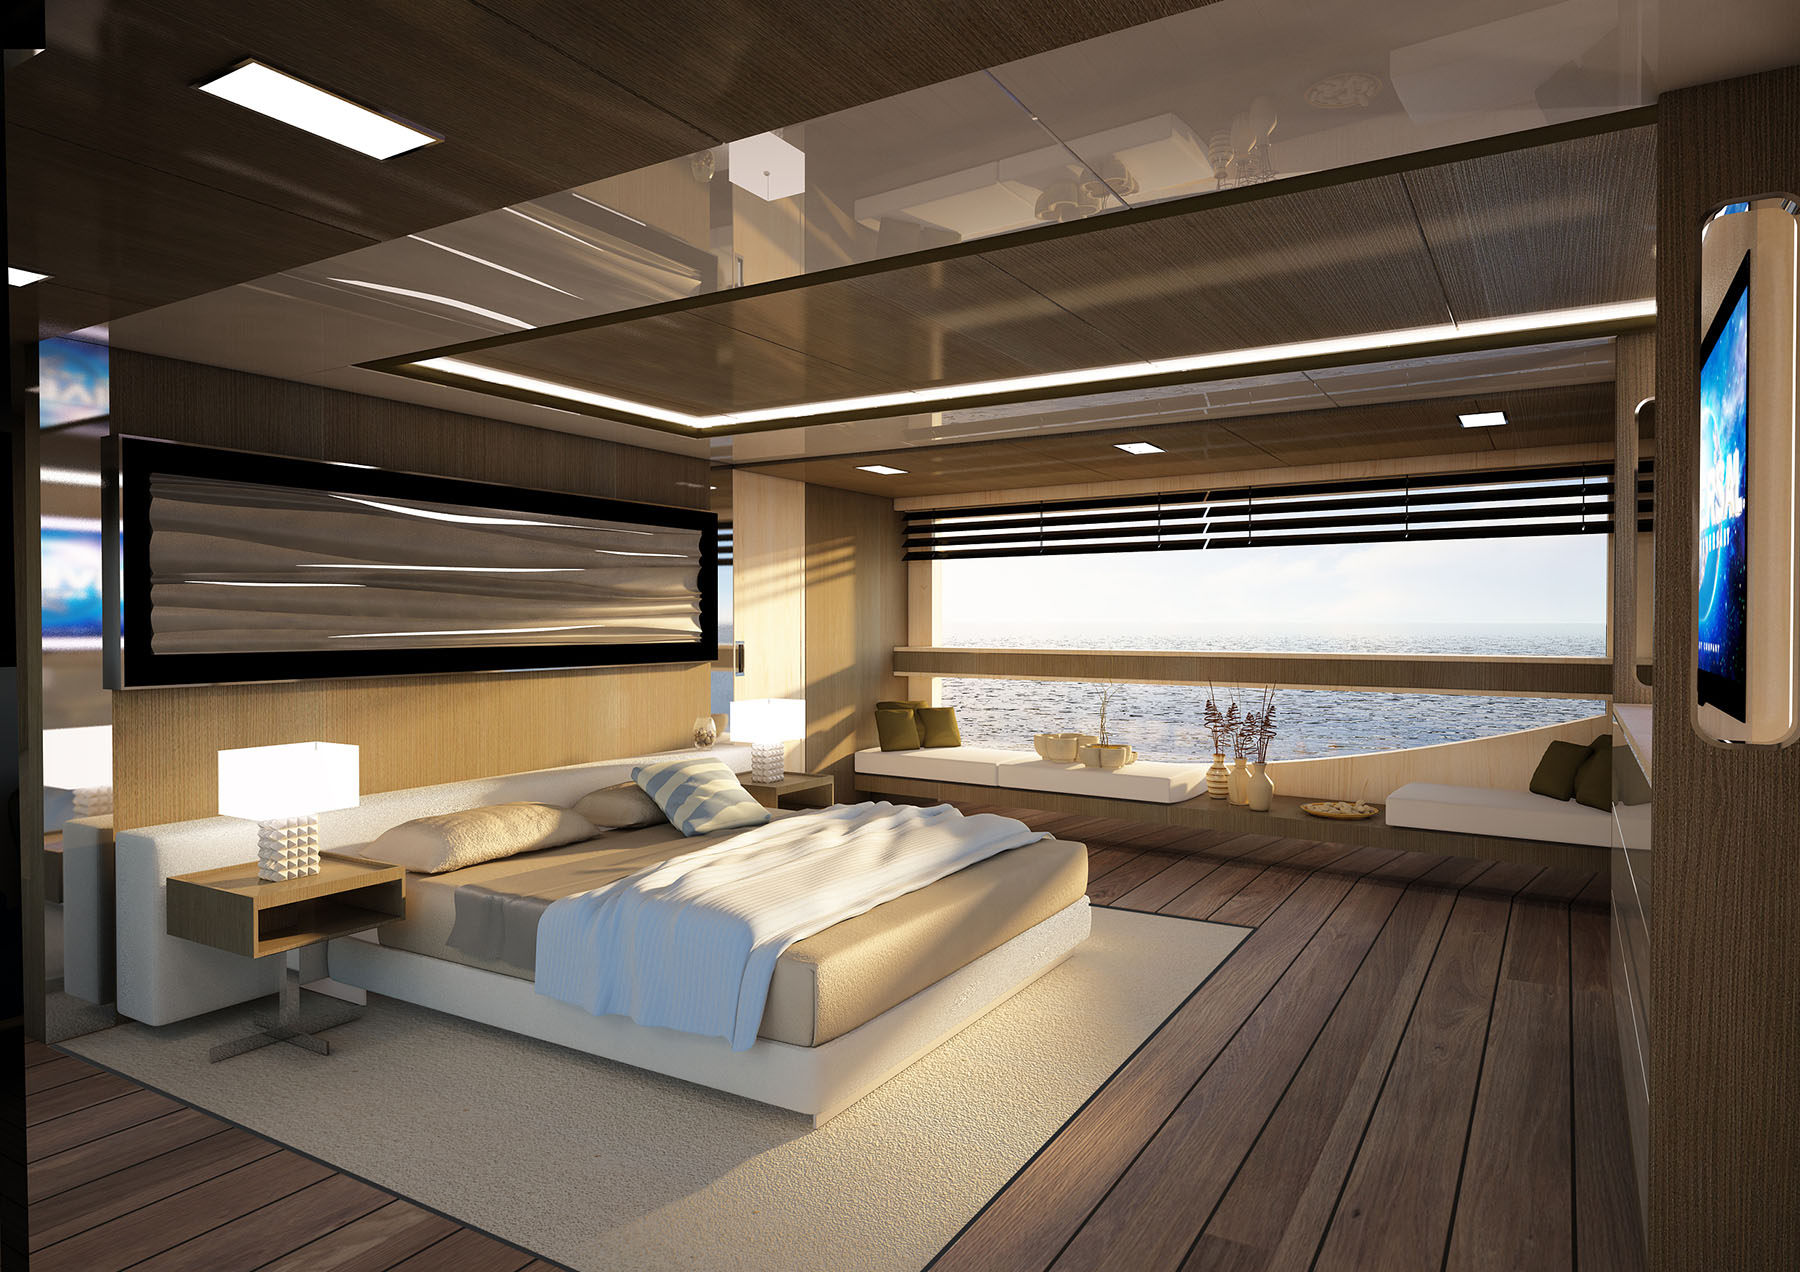 Master Cabin of M/Y OMBRA 37 Yacht for Sale